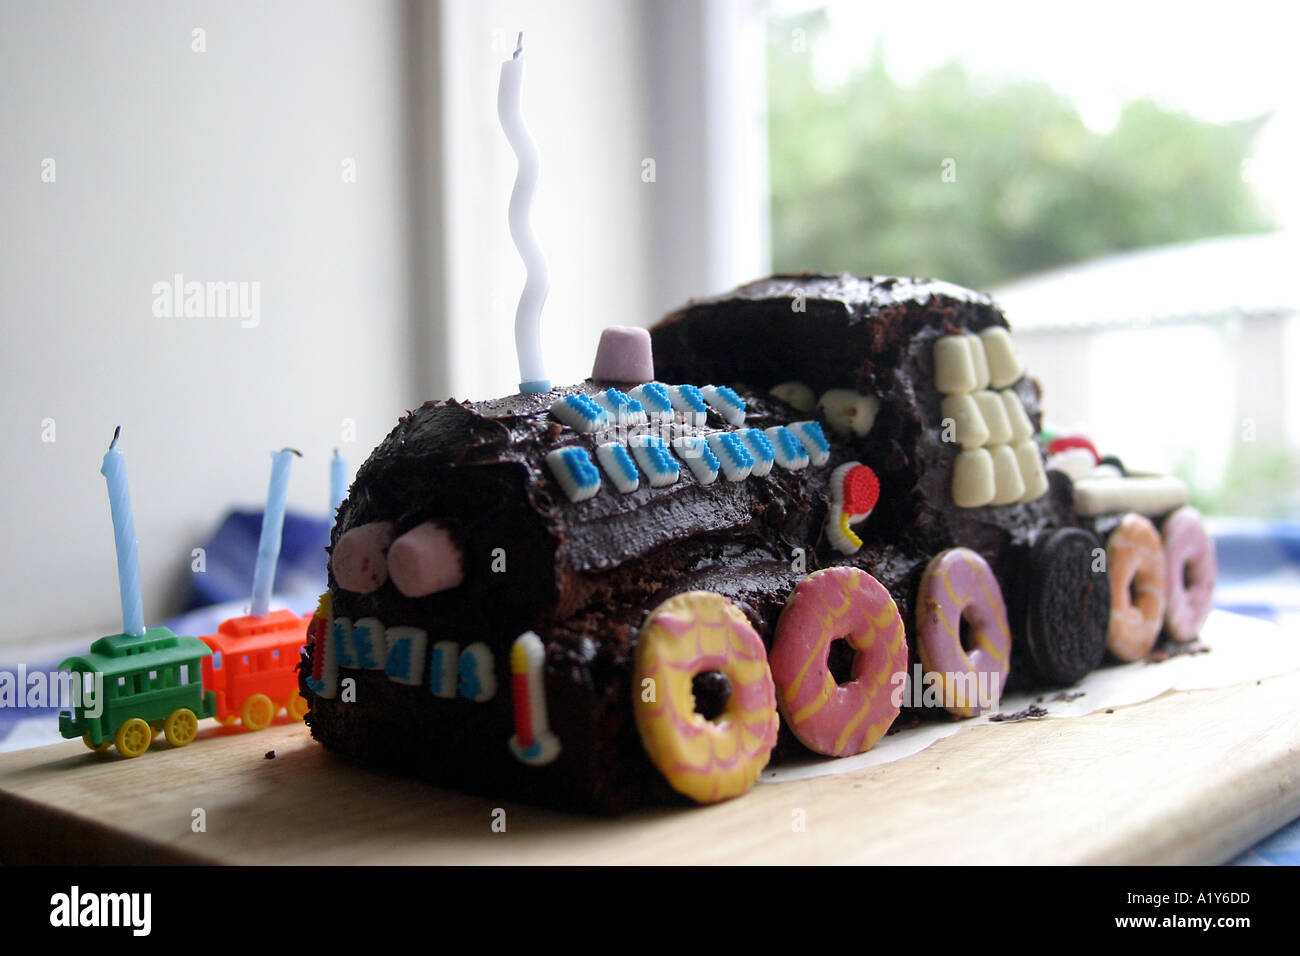 Superb Three Year Old Birthday Train Cake Stock Photo 1930972 Alamy Funny Birthday Cards Online Inifodamsfinfo